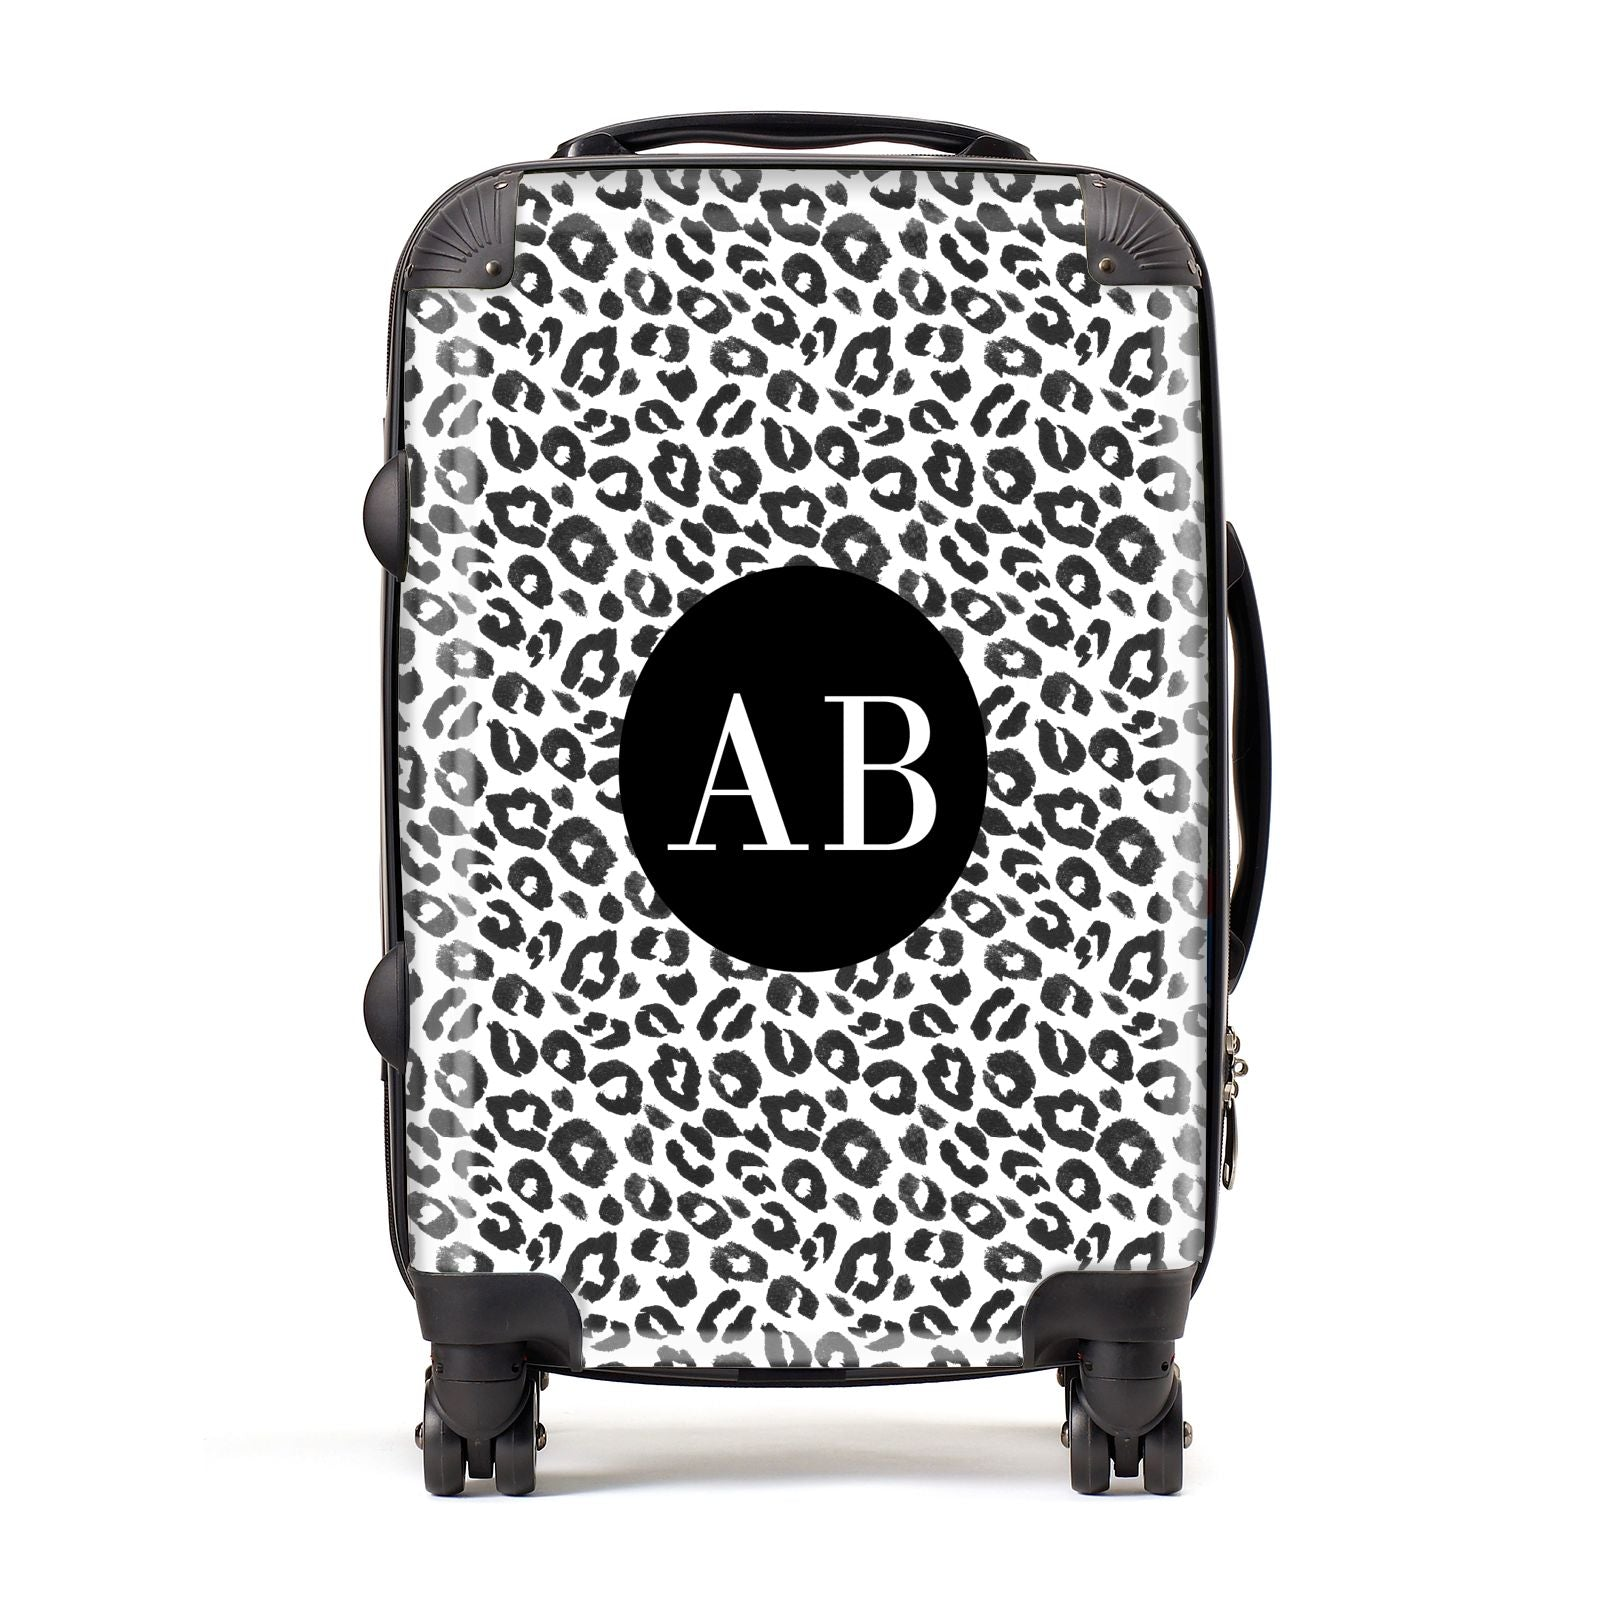 Leopard Print Black and White Suitcase